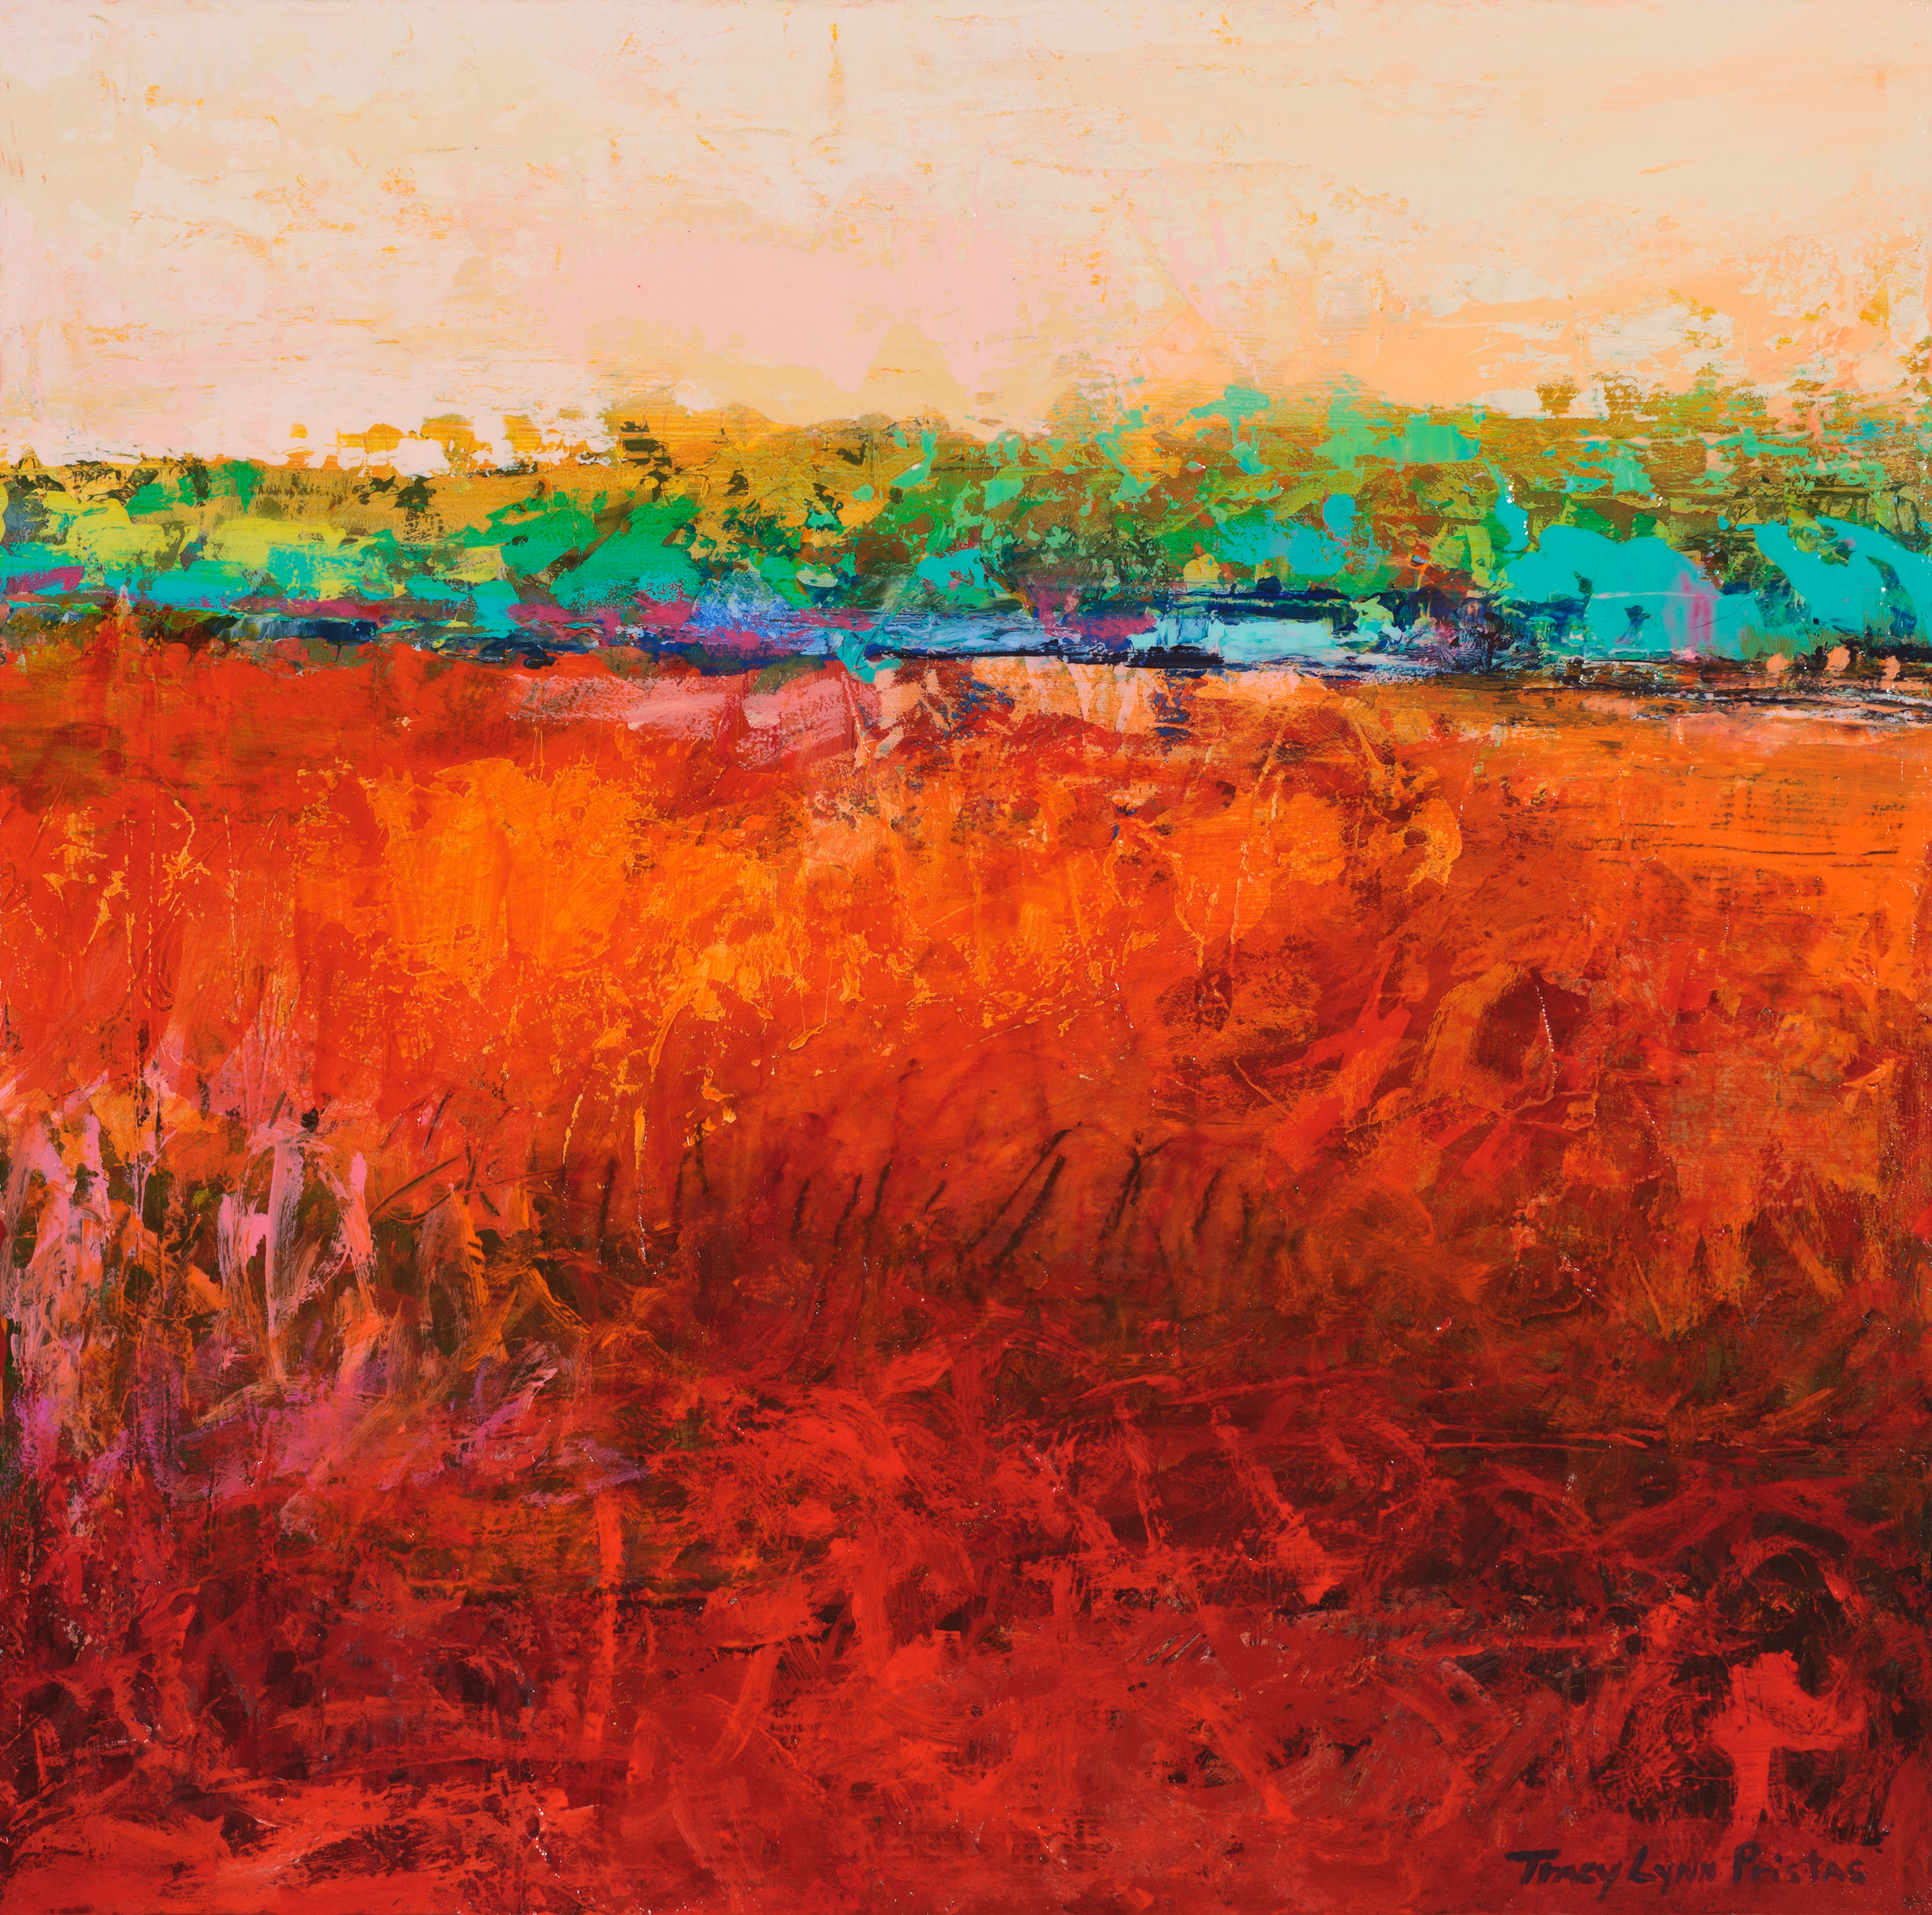 Tracy lynn pristas  abstract landscapes southwestern art  desert memories acrylic pastel on panel z8u6gy